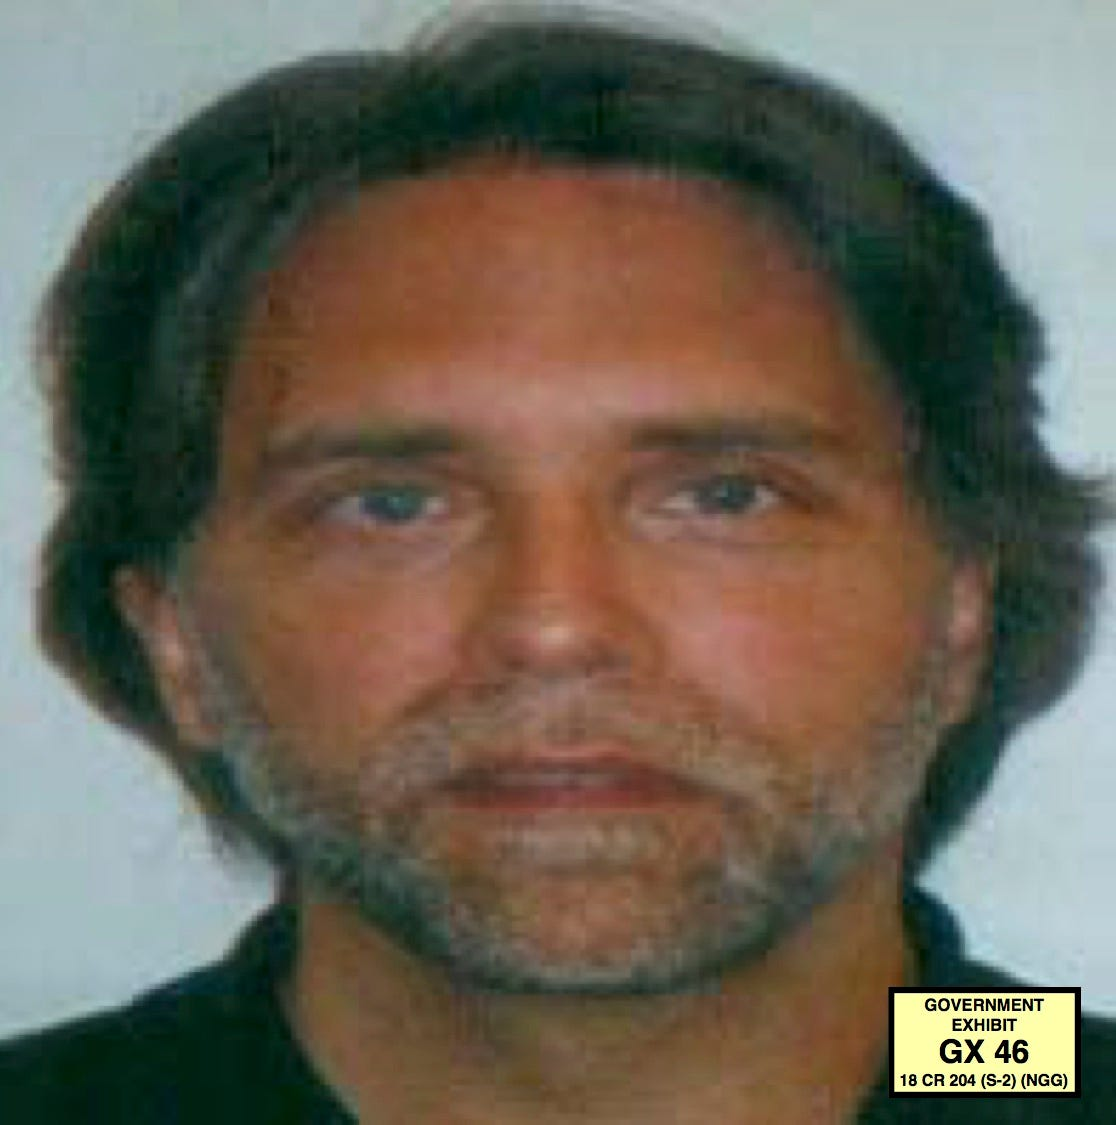 Keith Raniere, founder of cult-like group NXIVM, faces possible life sentence Tuesday